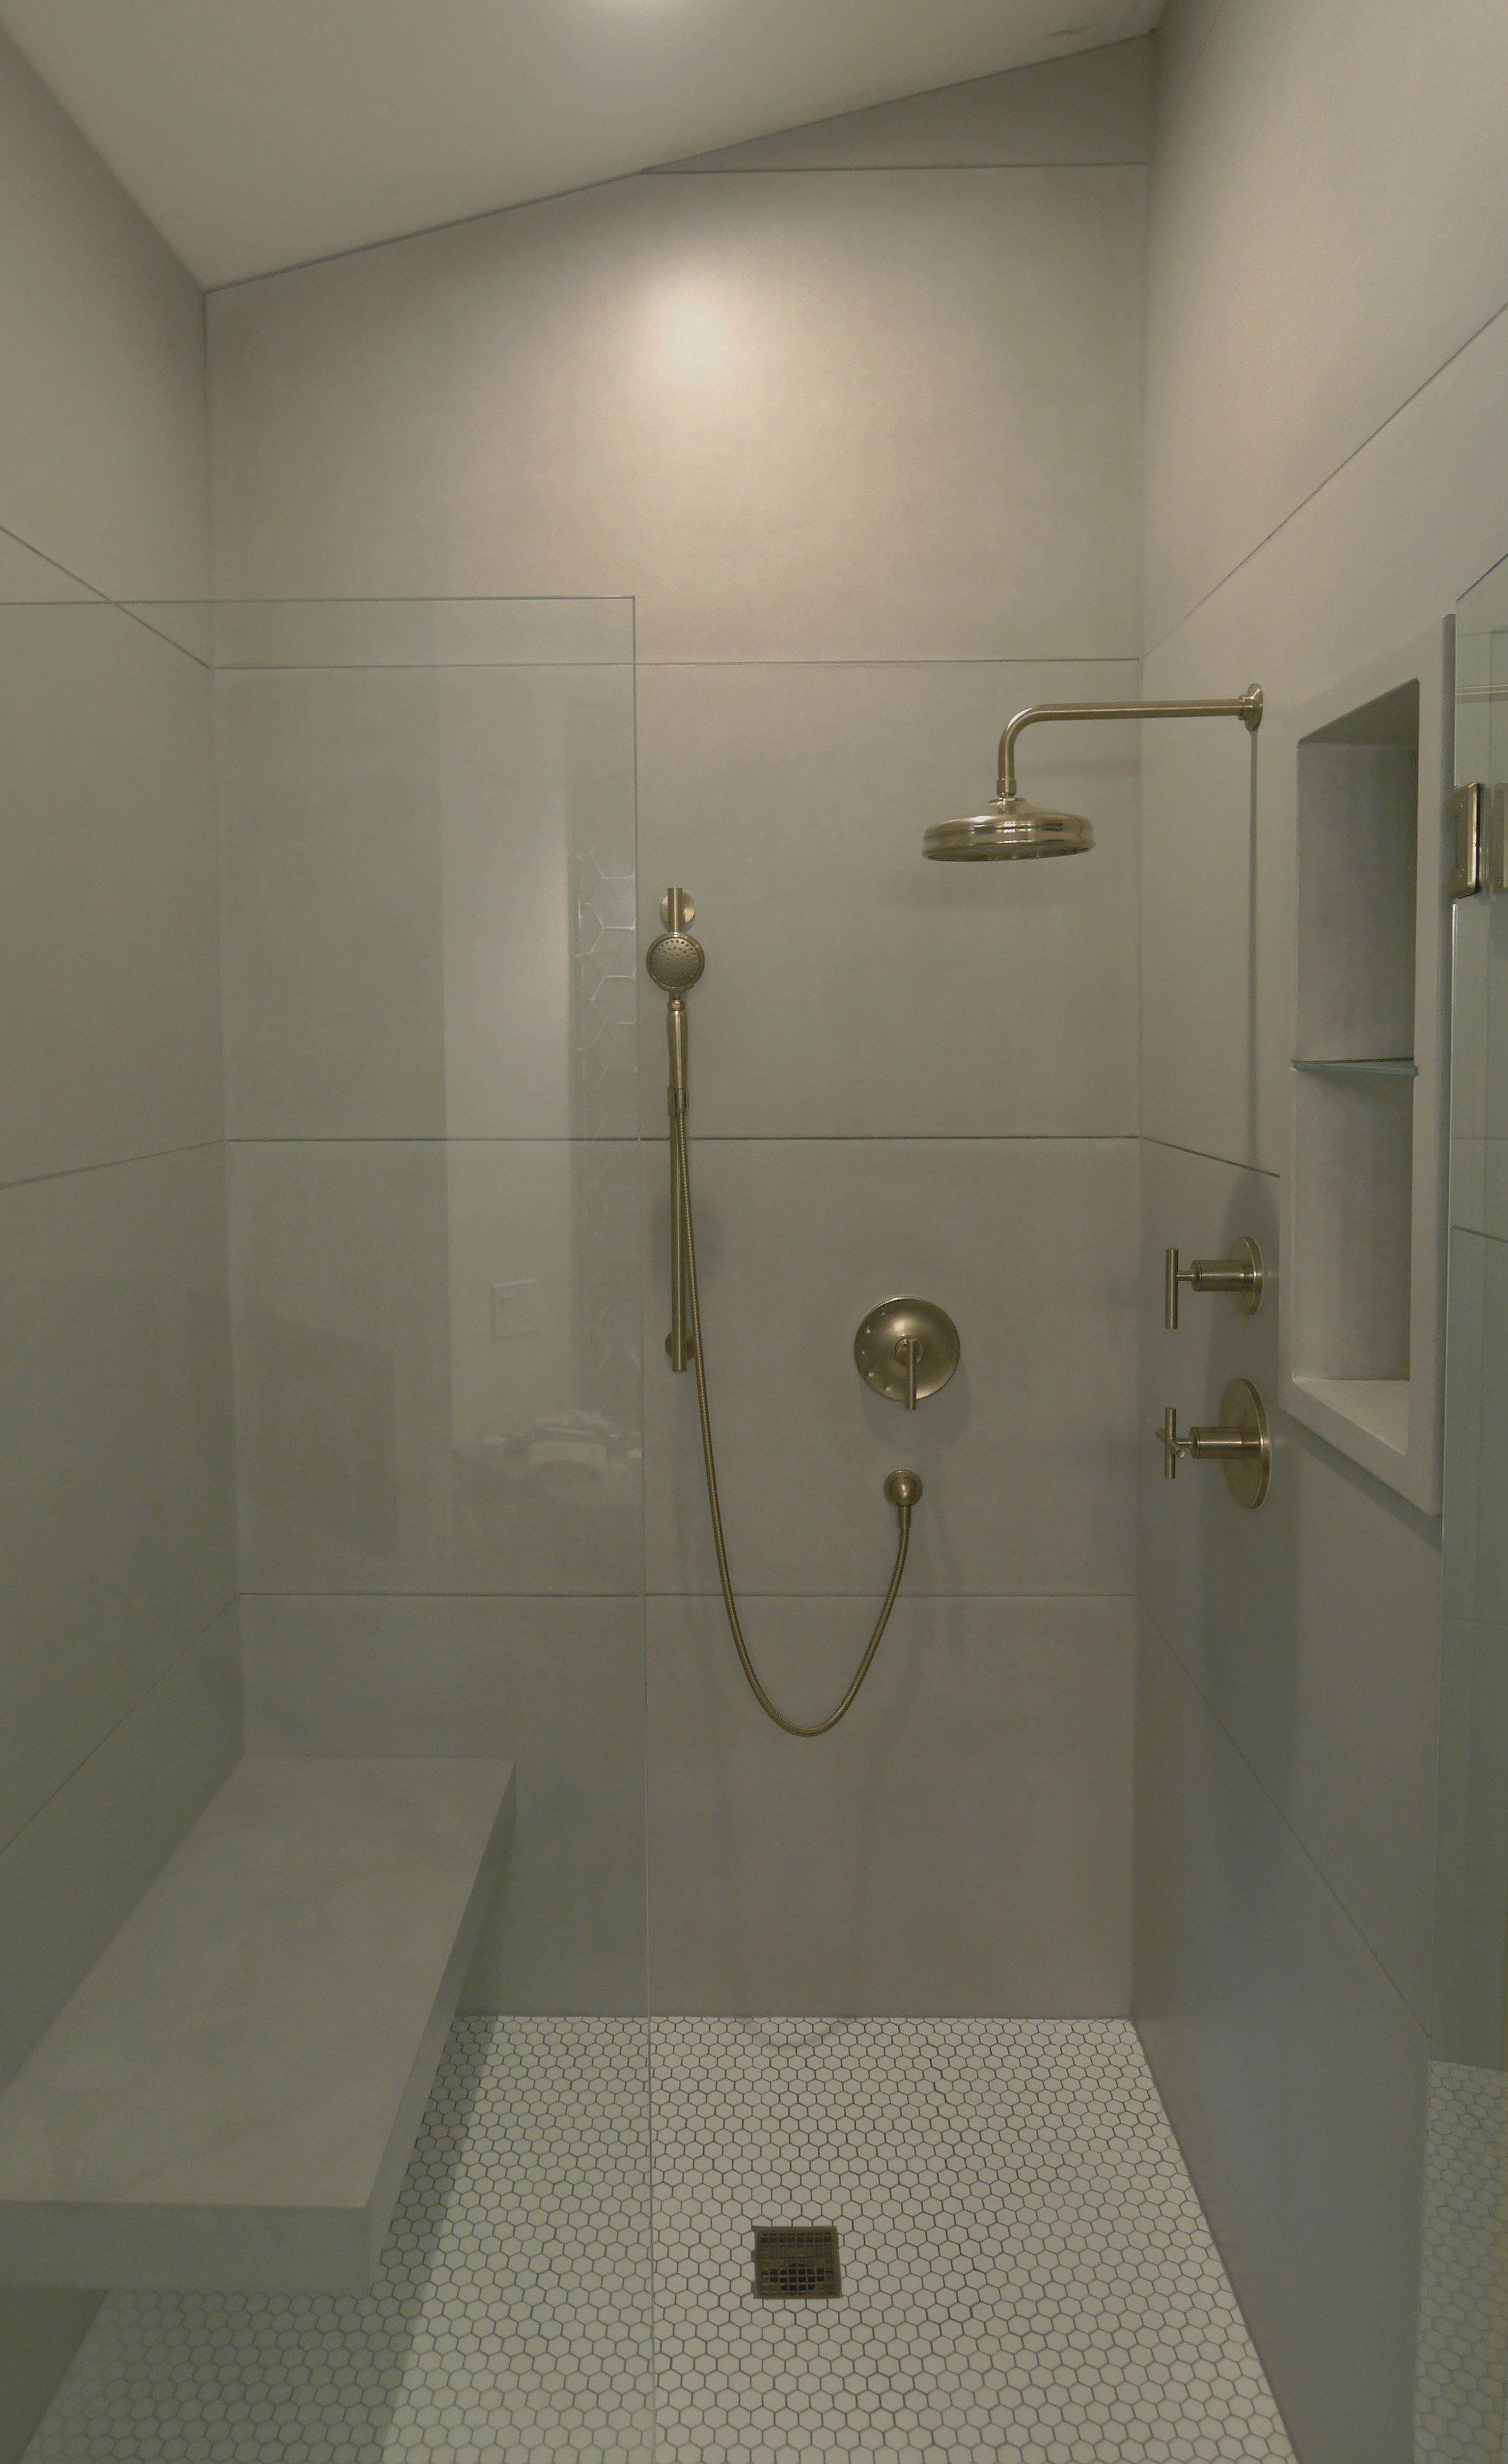 Large Format Concrete Tile Shower with Floating Bench - Copy.jpg